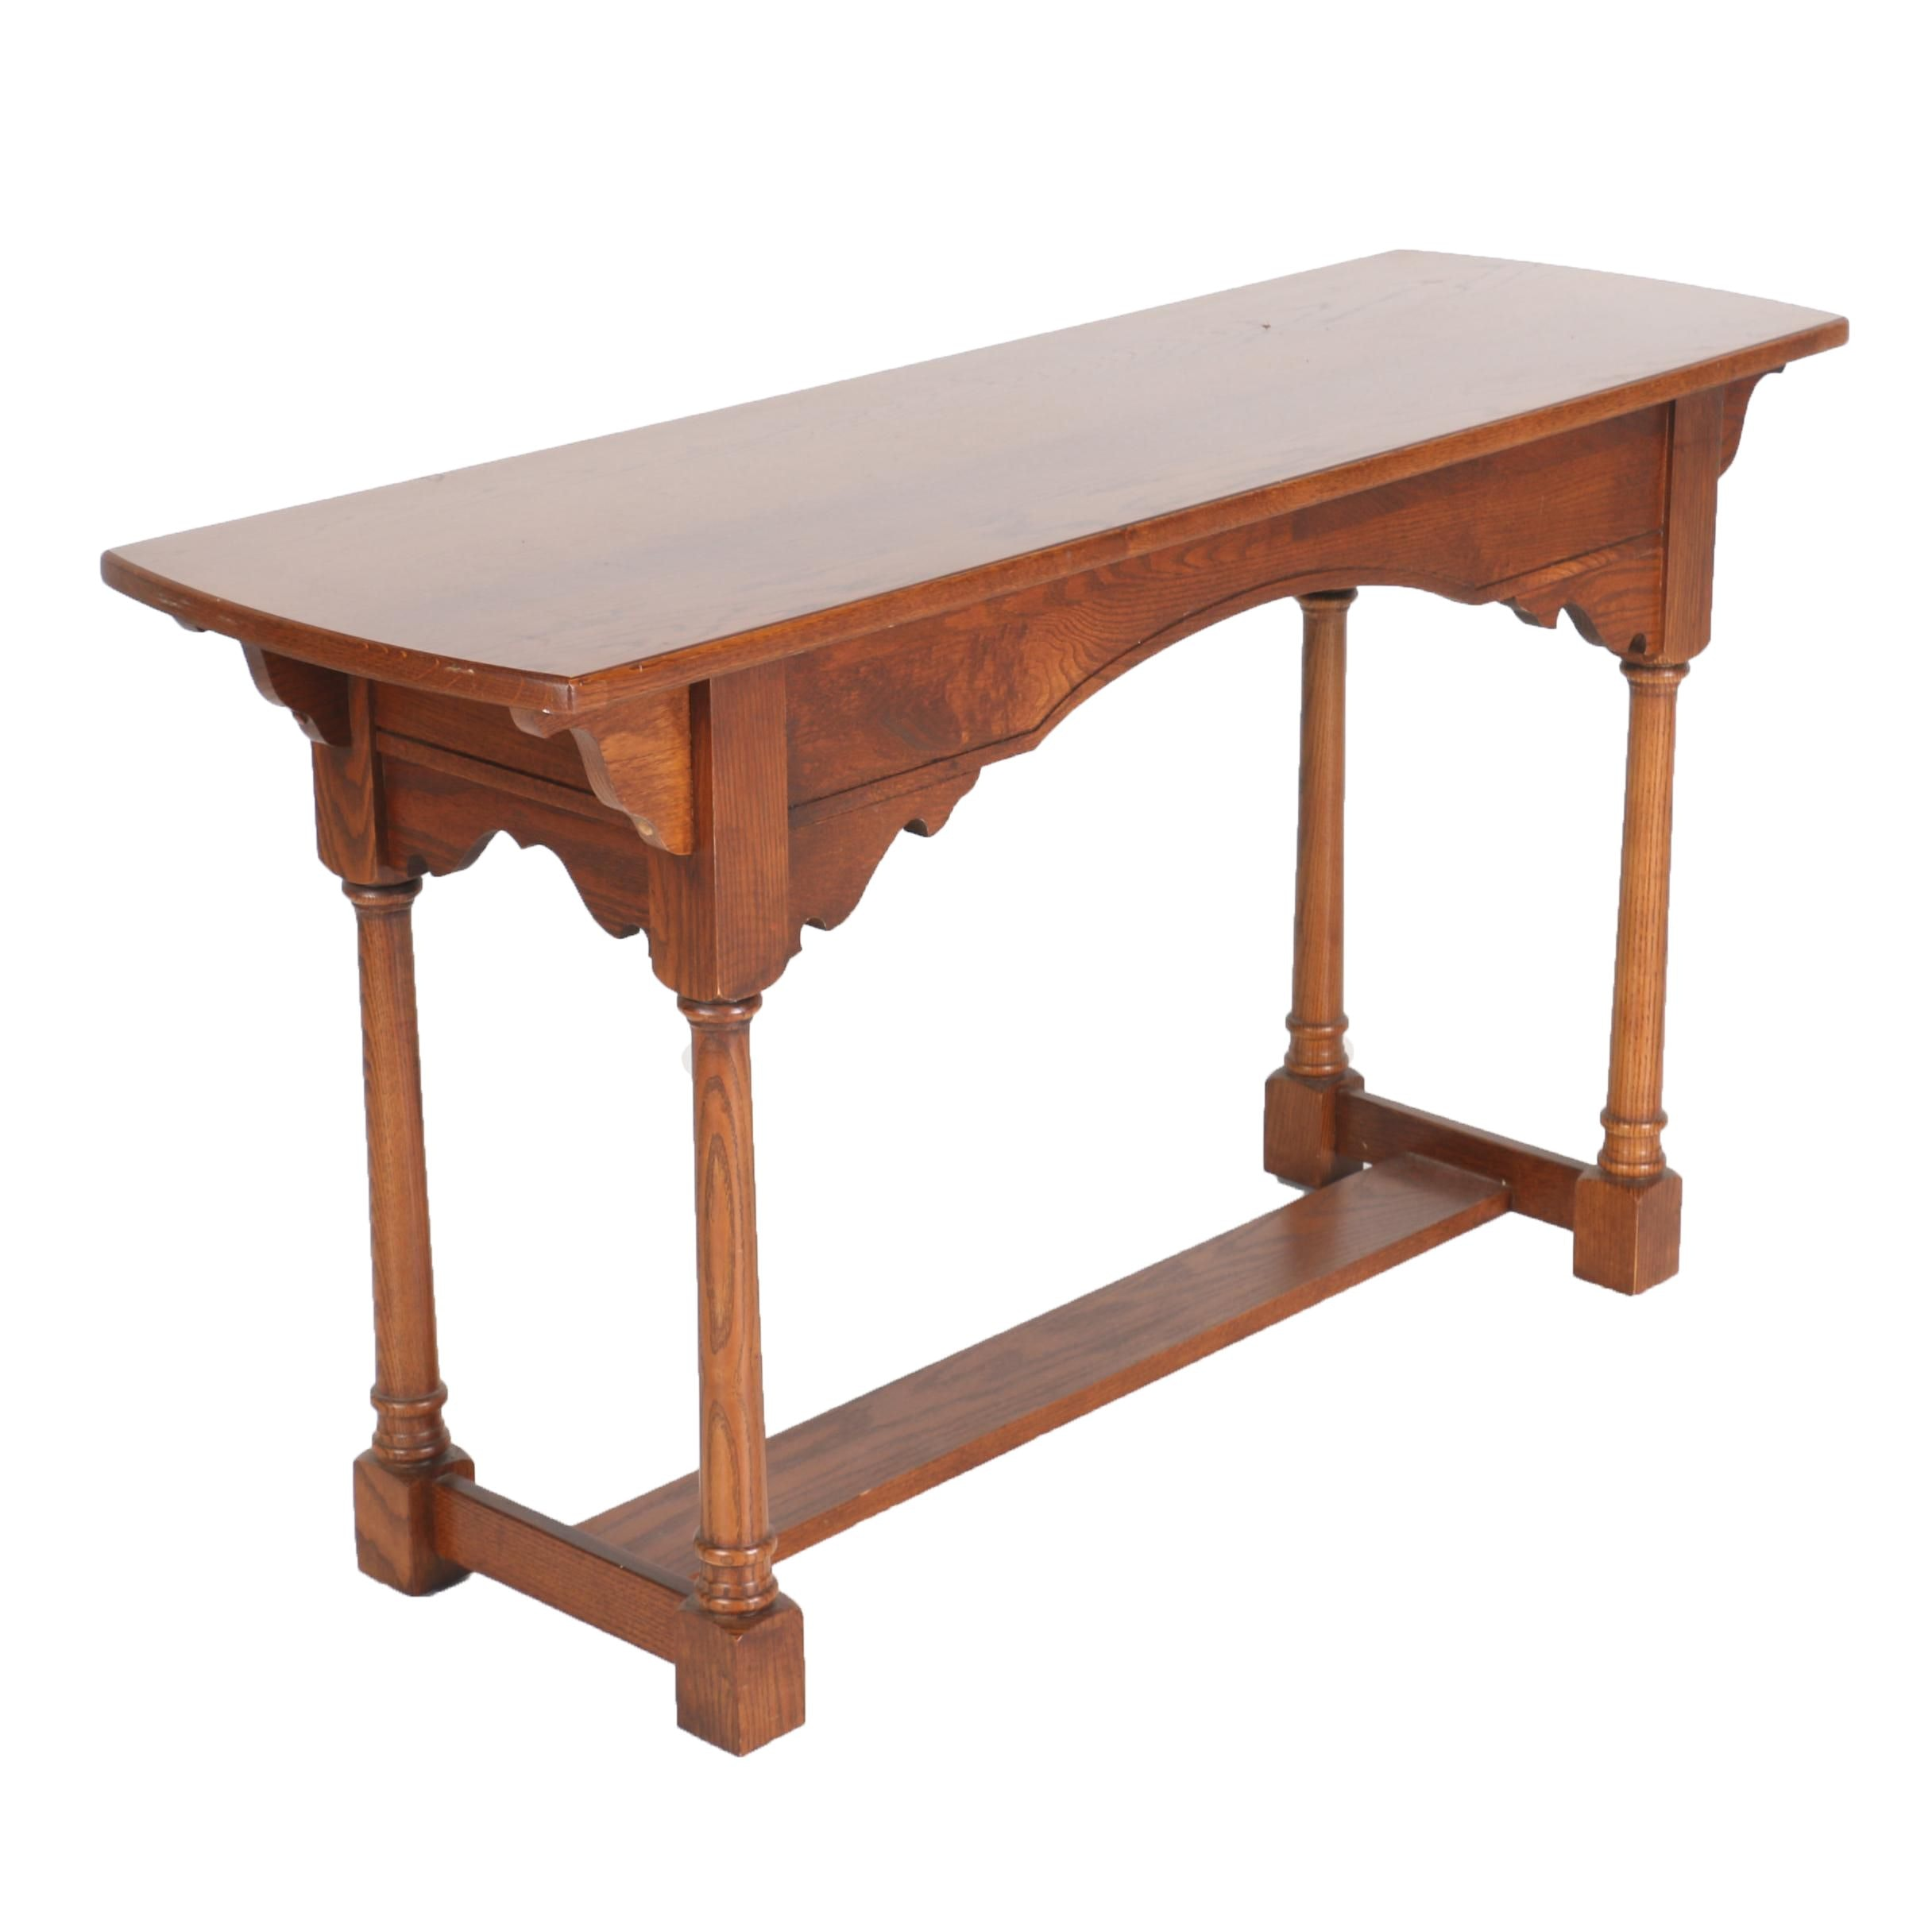 Oak Sofa Table with Scallop Arched Apron